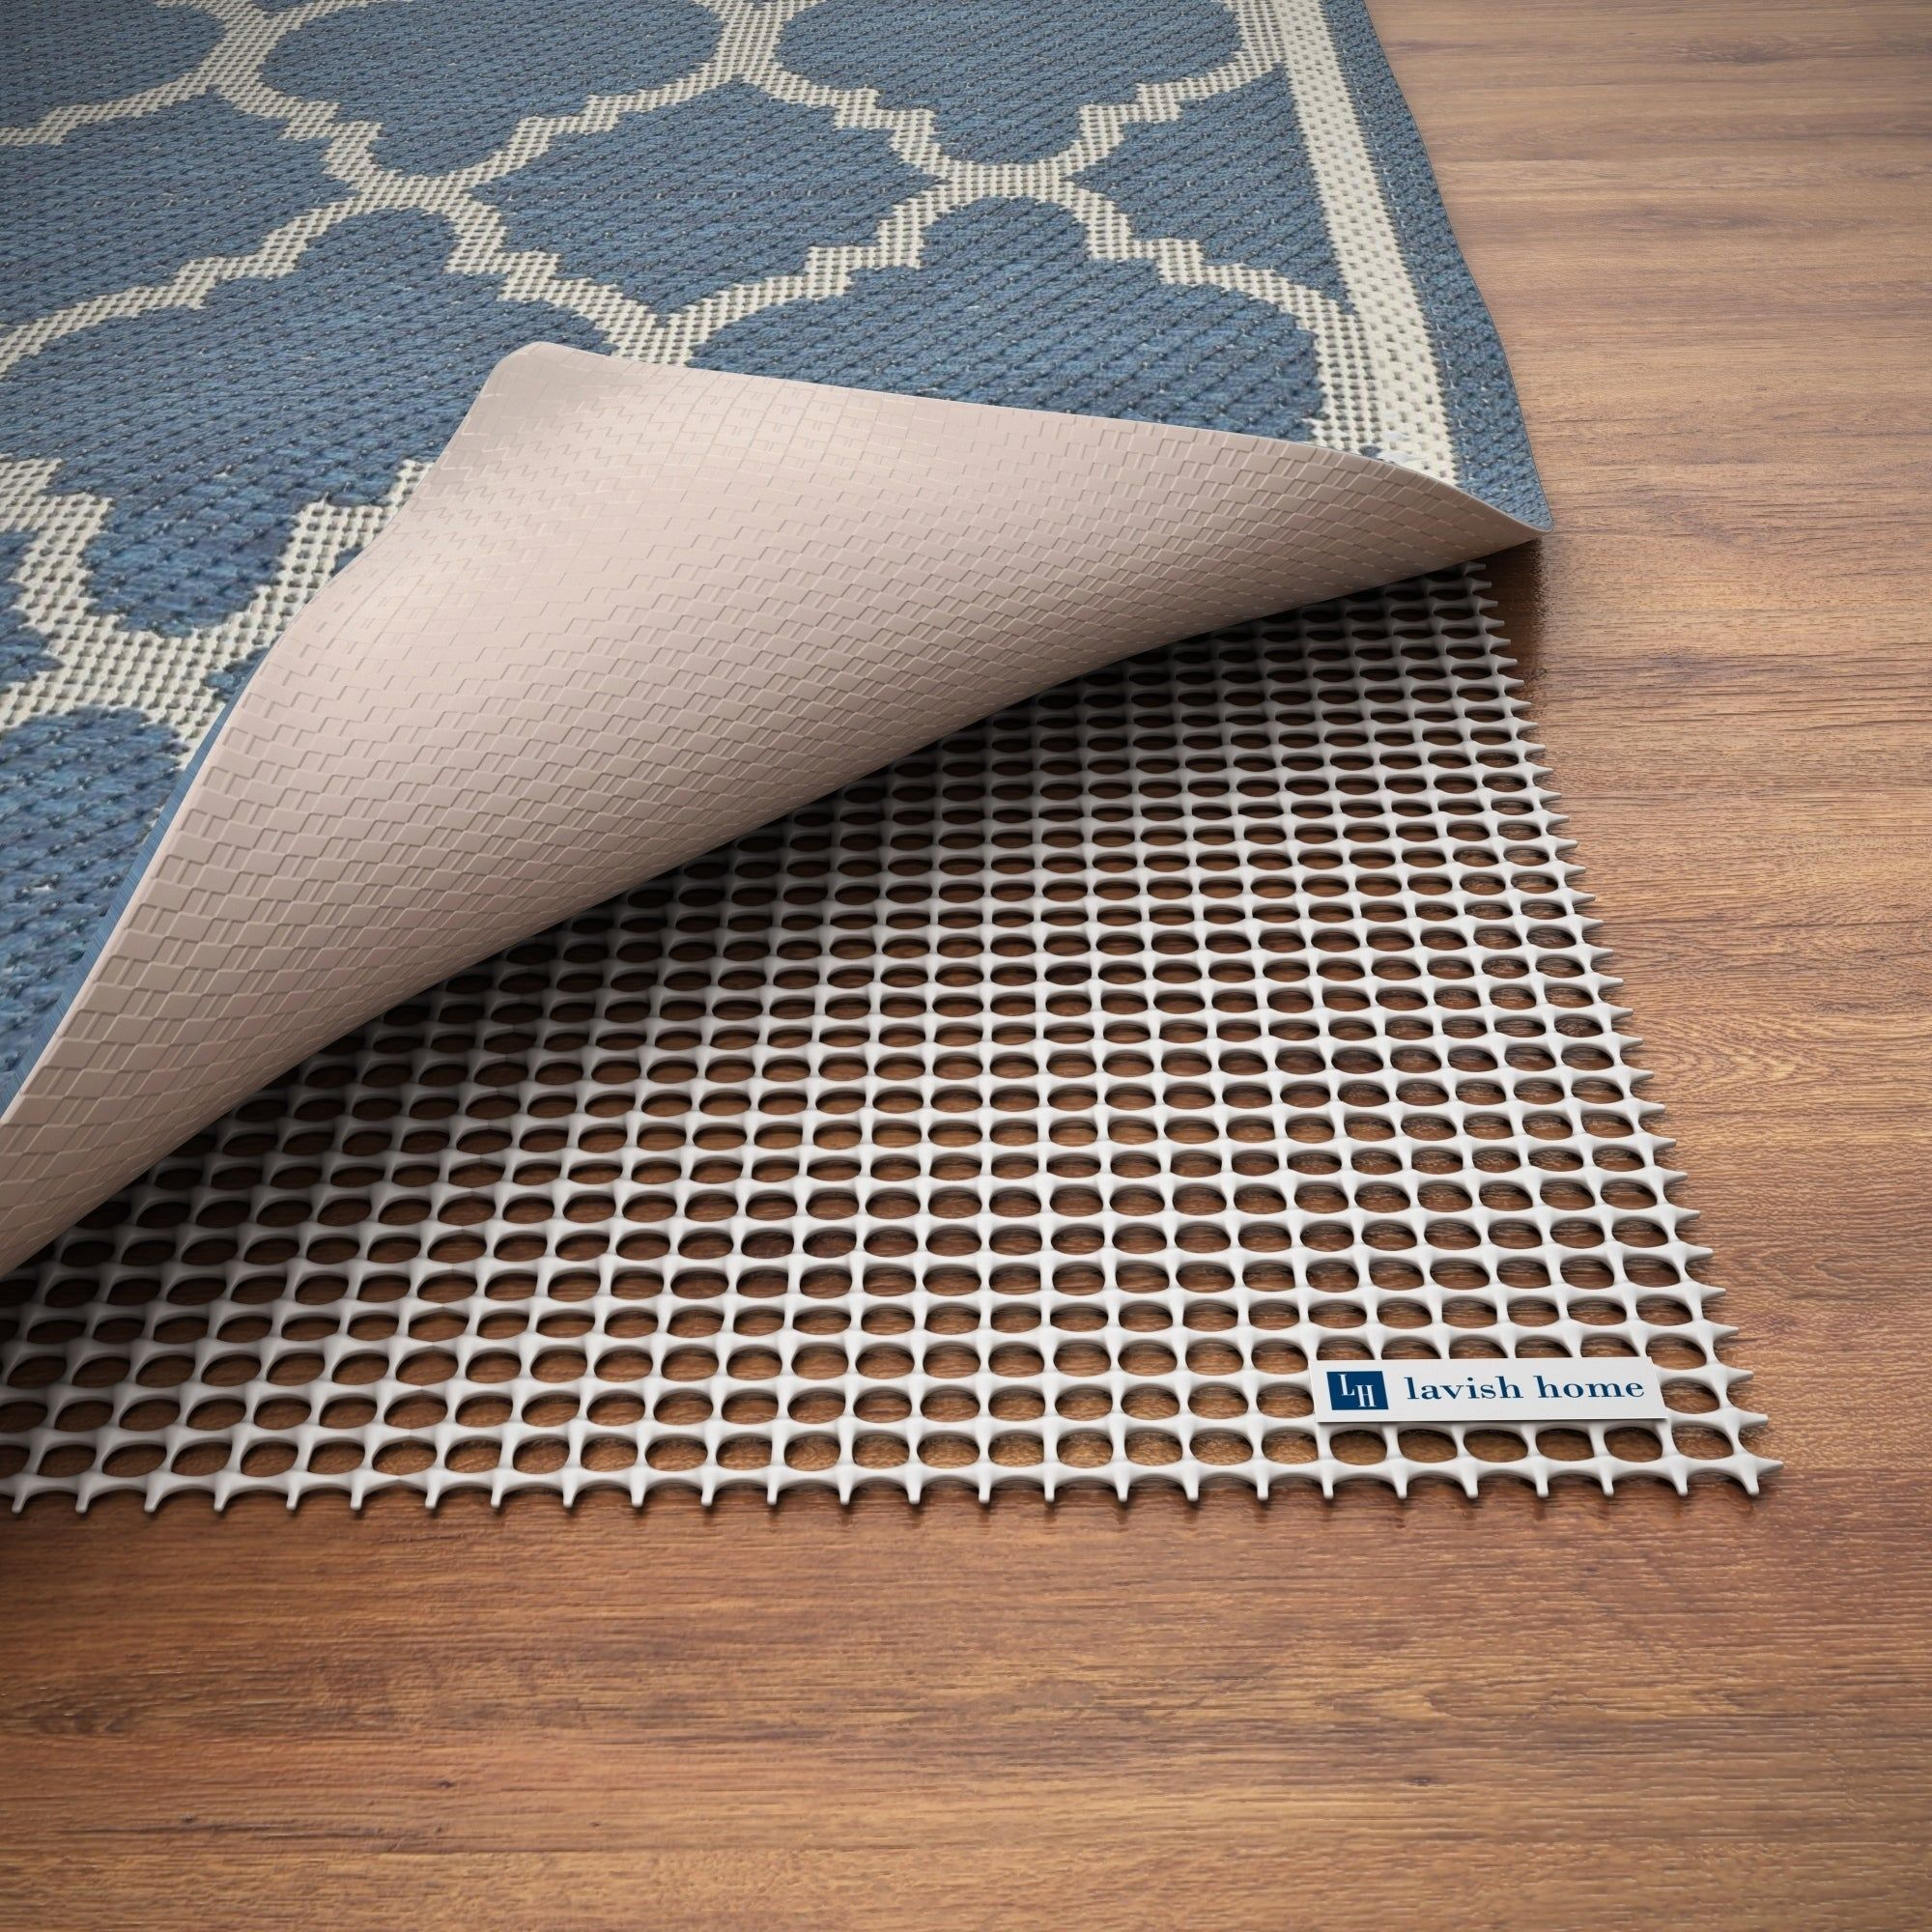 Non Slip Rug Pad Rubber Non Skid Gripper For Area Rugs On Hard